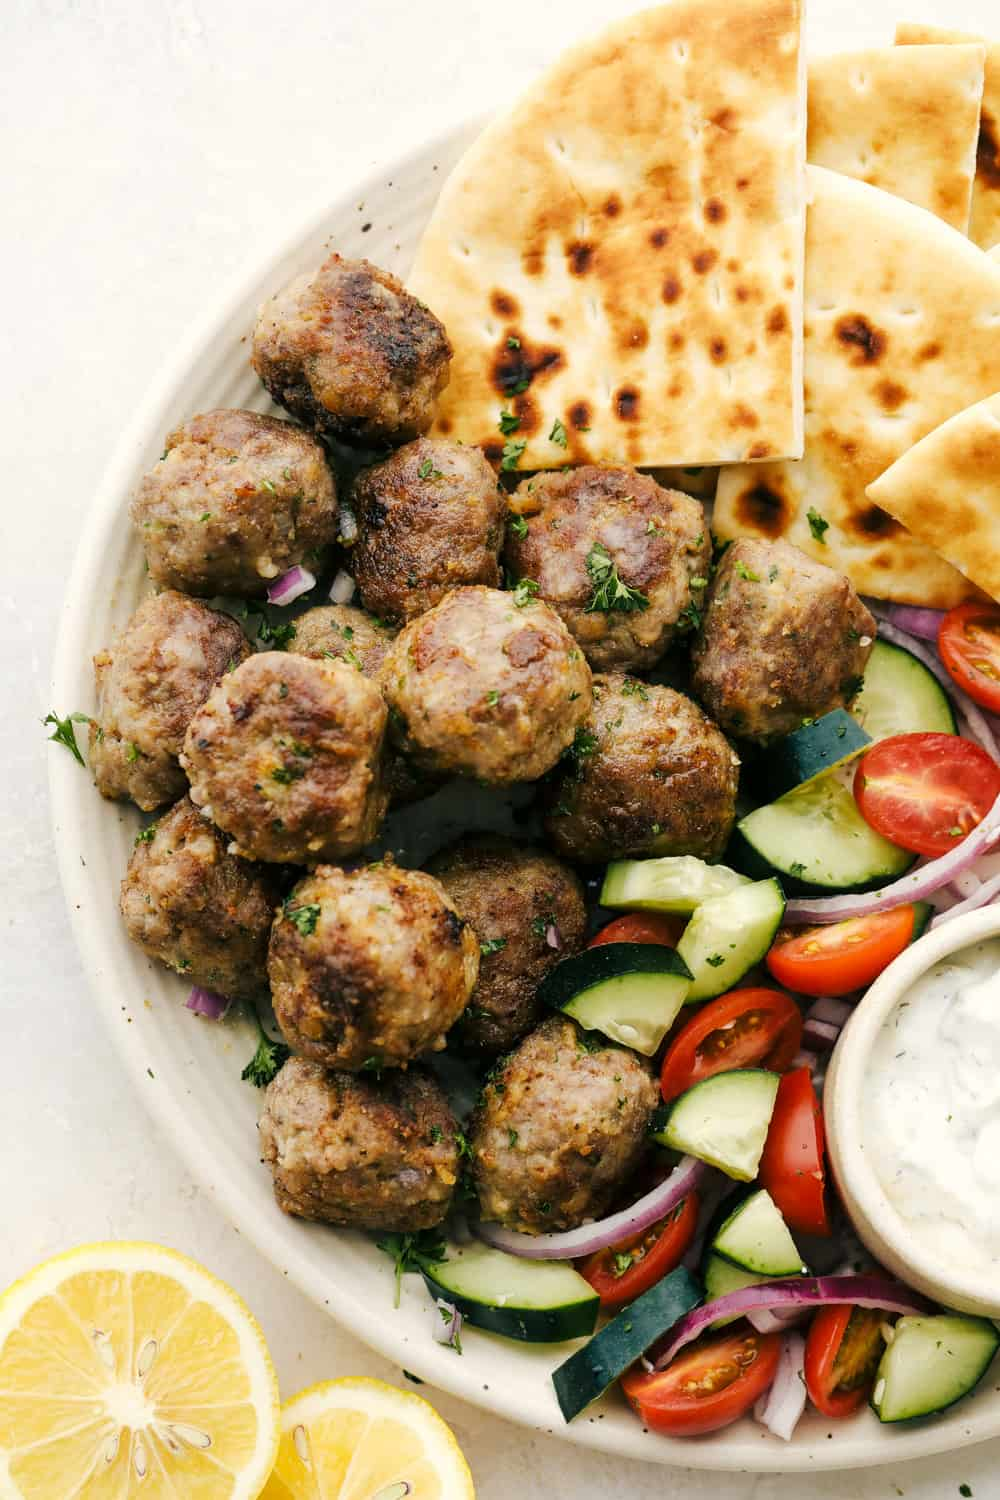 Greek meatballs on a plate with pitas, cucumbers, tomatoes, and tzatziki sauce.